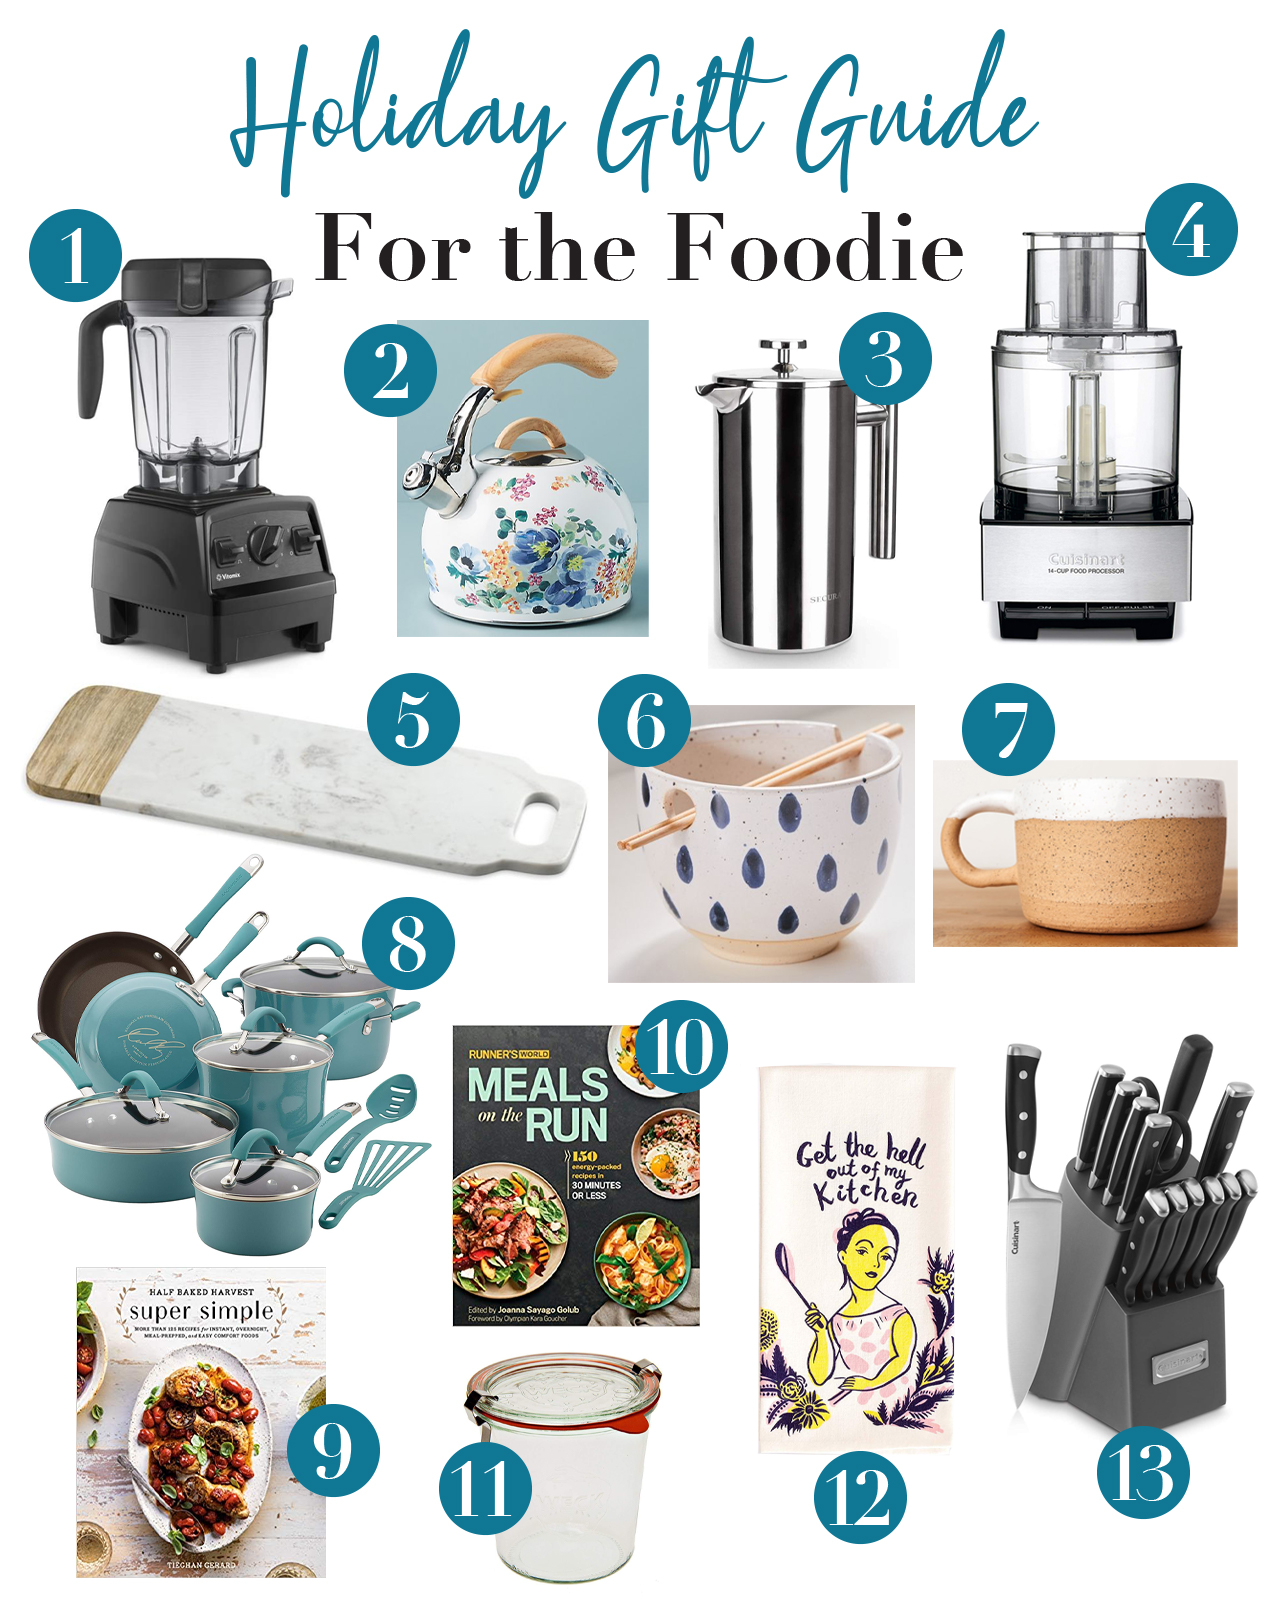 2019 Holiday Gift Guide for the Foodie